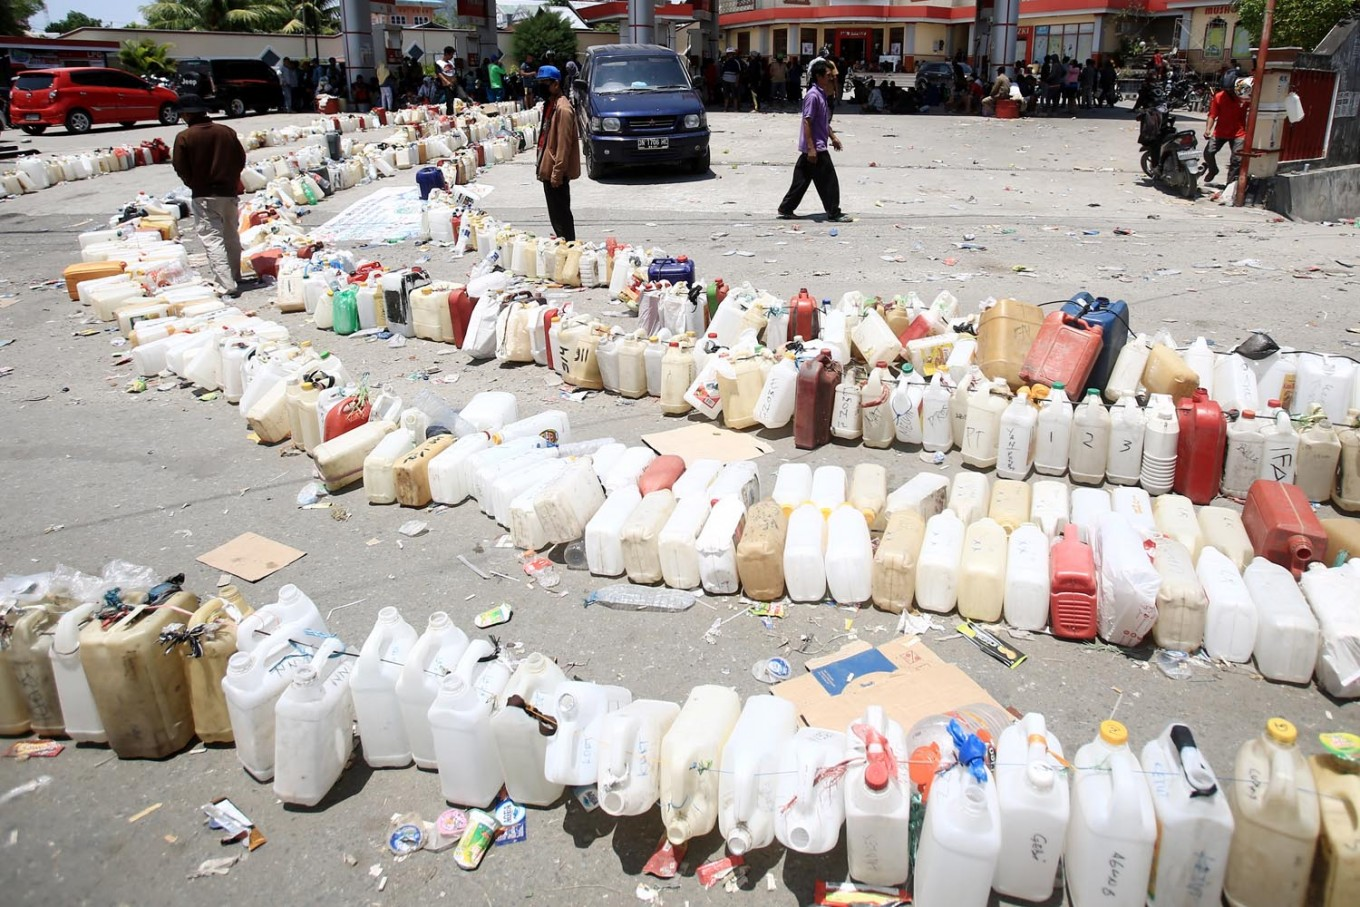 Rows of empty plastic containers are lined up at a gas station on Jl. Maluku, Palu, Central Sulawesi on Wednesday, October 3, 2018. State energy firm PT Pertamina has supplied over 11 million liters in the city hit by the quake and tsunami. Pertamina is also supplying fuel from a tanker despatched from Balikpapan, East Kalimantan. JP/Dhoni Setiawan